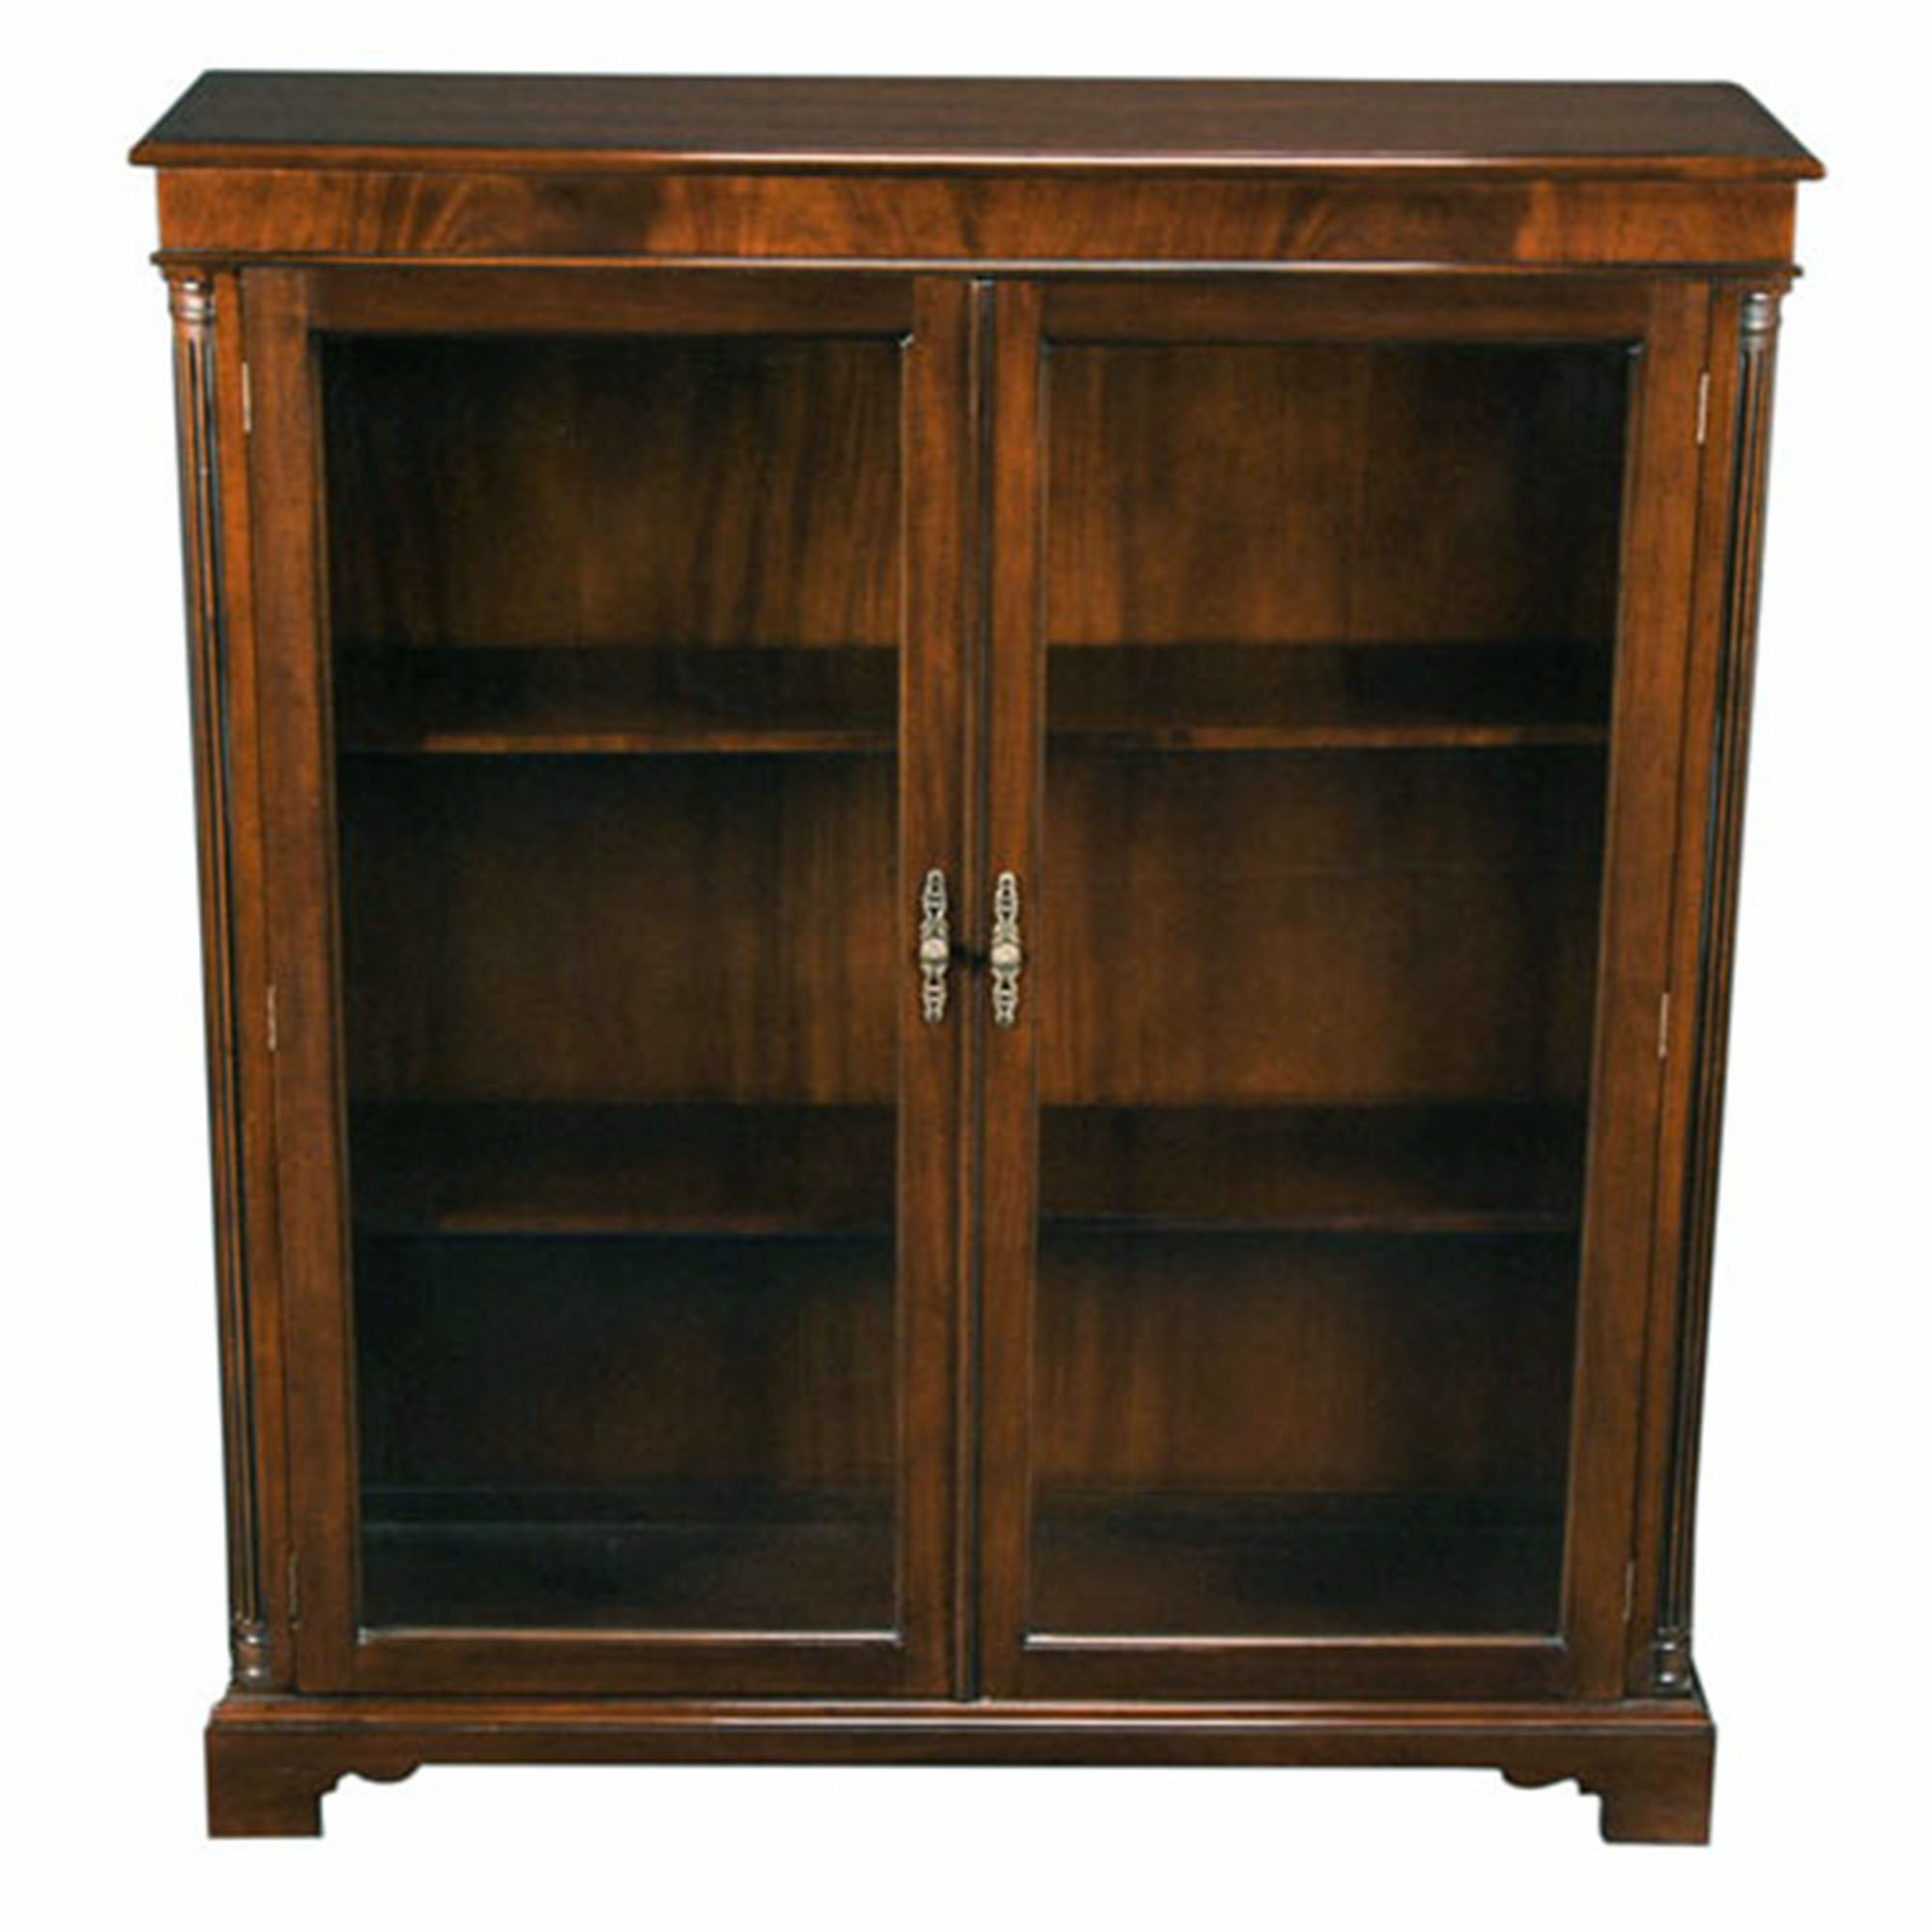 Wood Bookcases With Doors ~ Solid mahogany glass door closed bookcase with adjustable